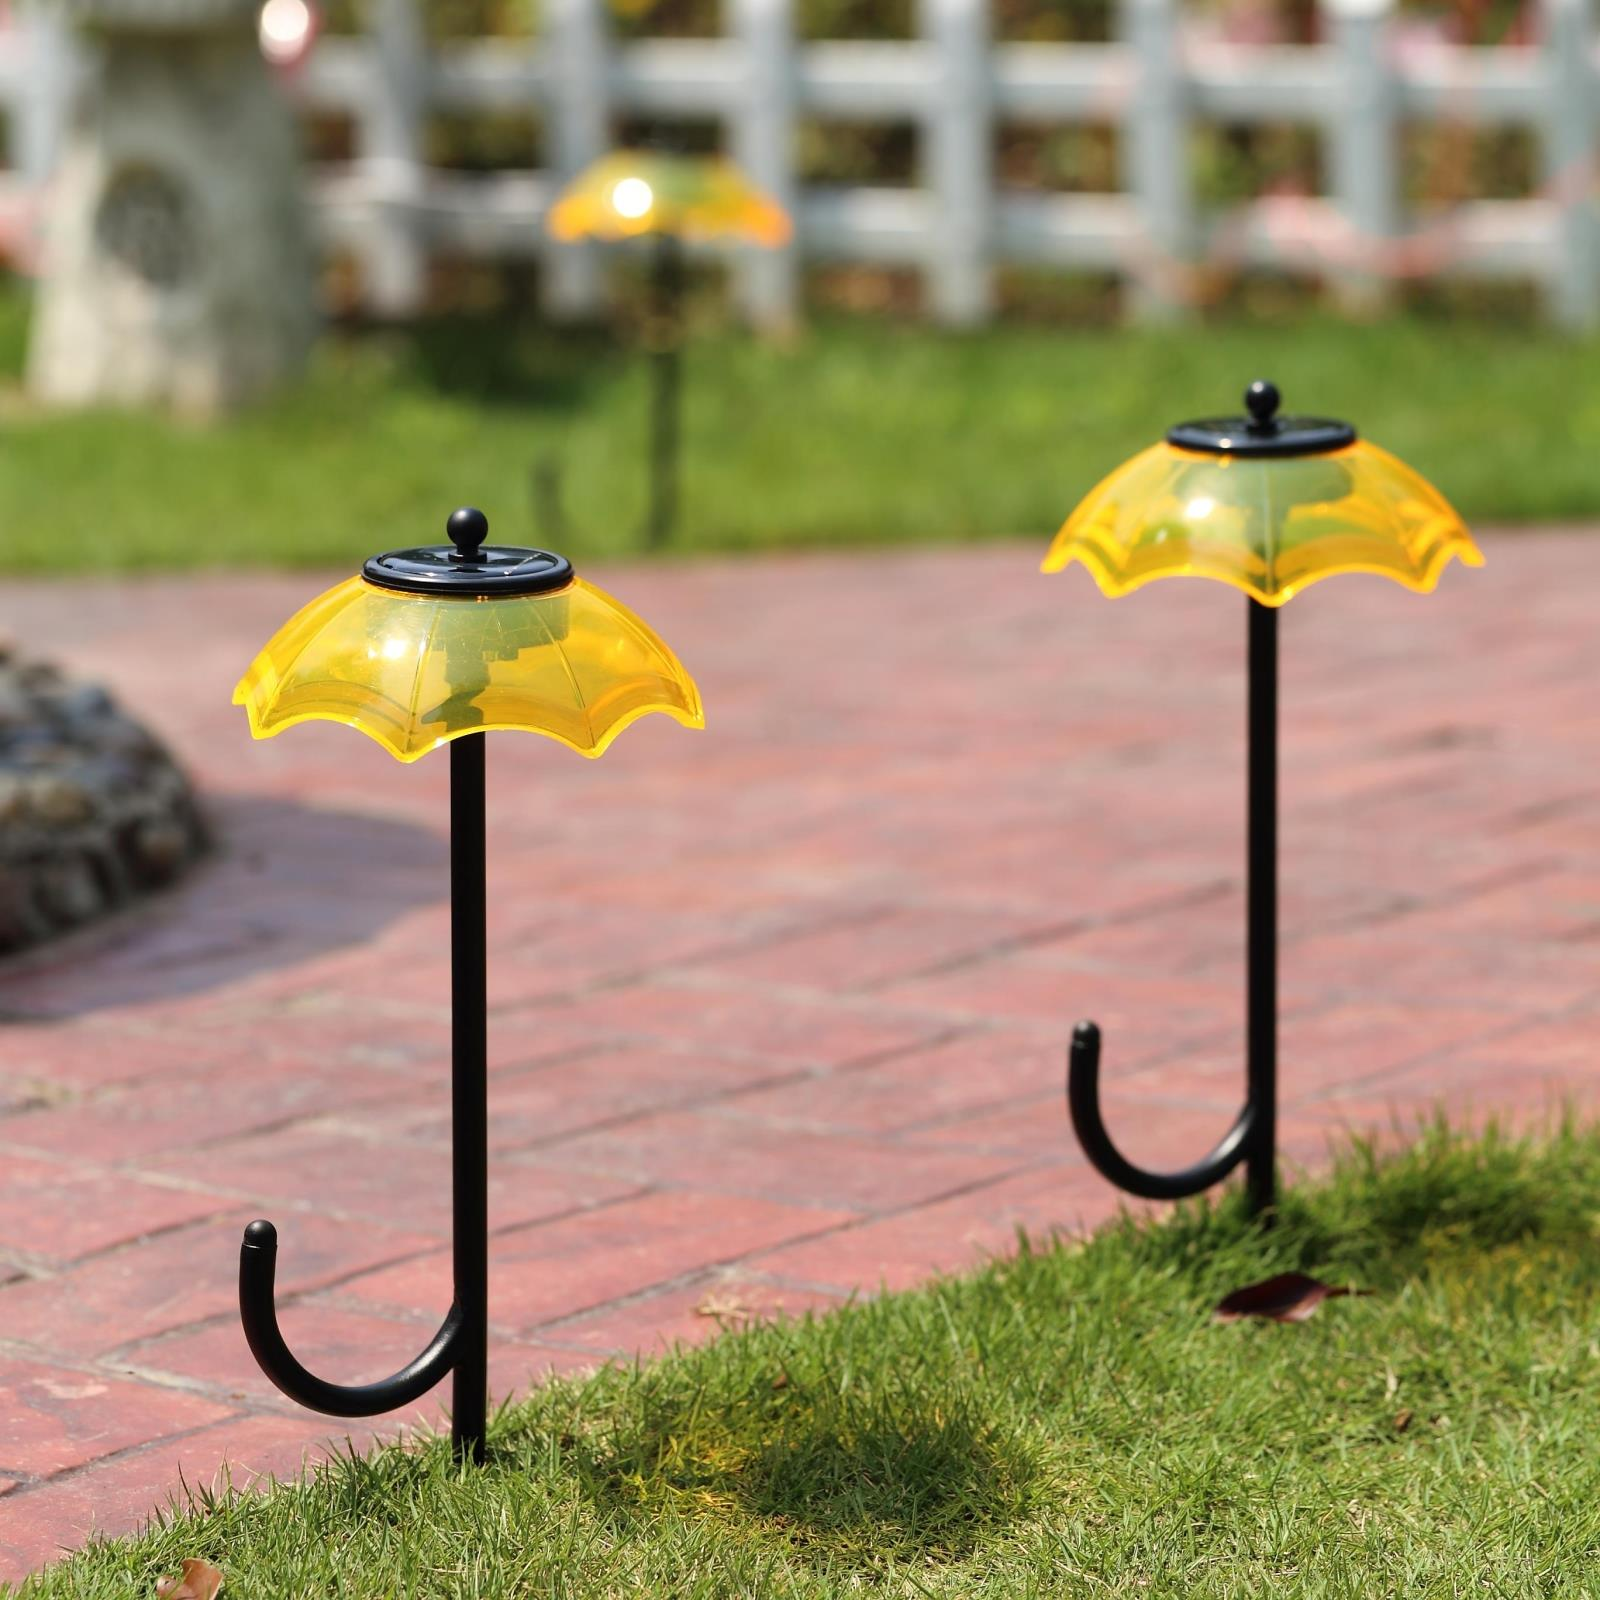 also patio ada f a trends powered lights cf with ab be lighting umbrellas led at cdcbf images solar rectangular umbrella attractive